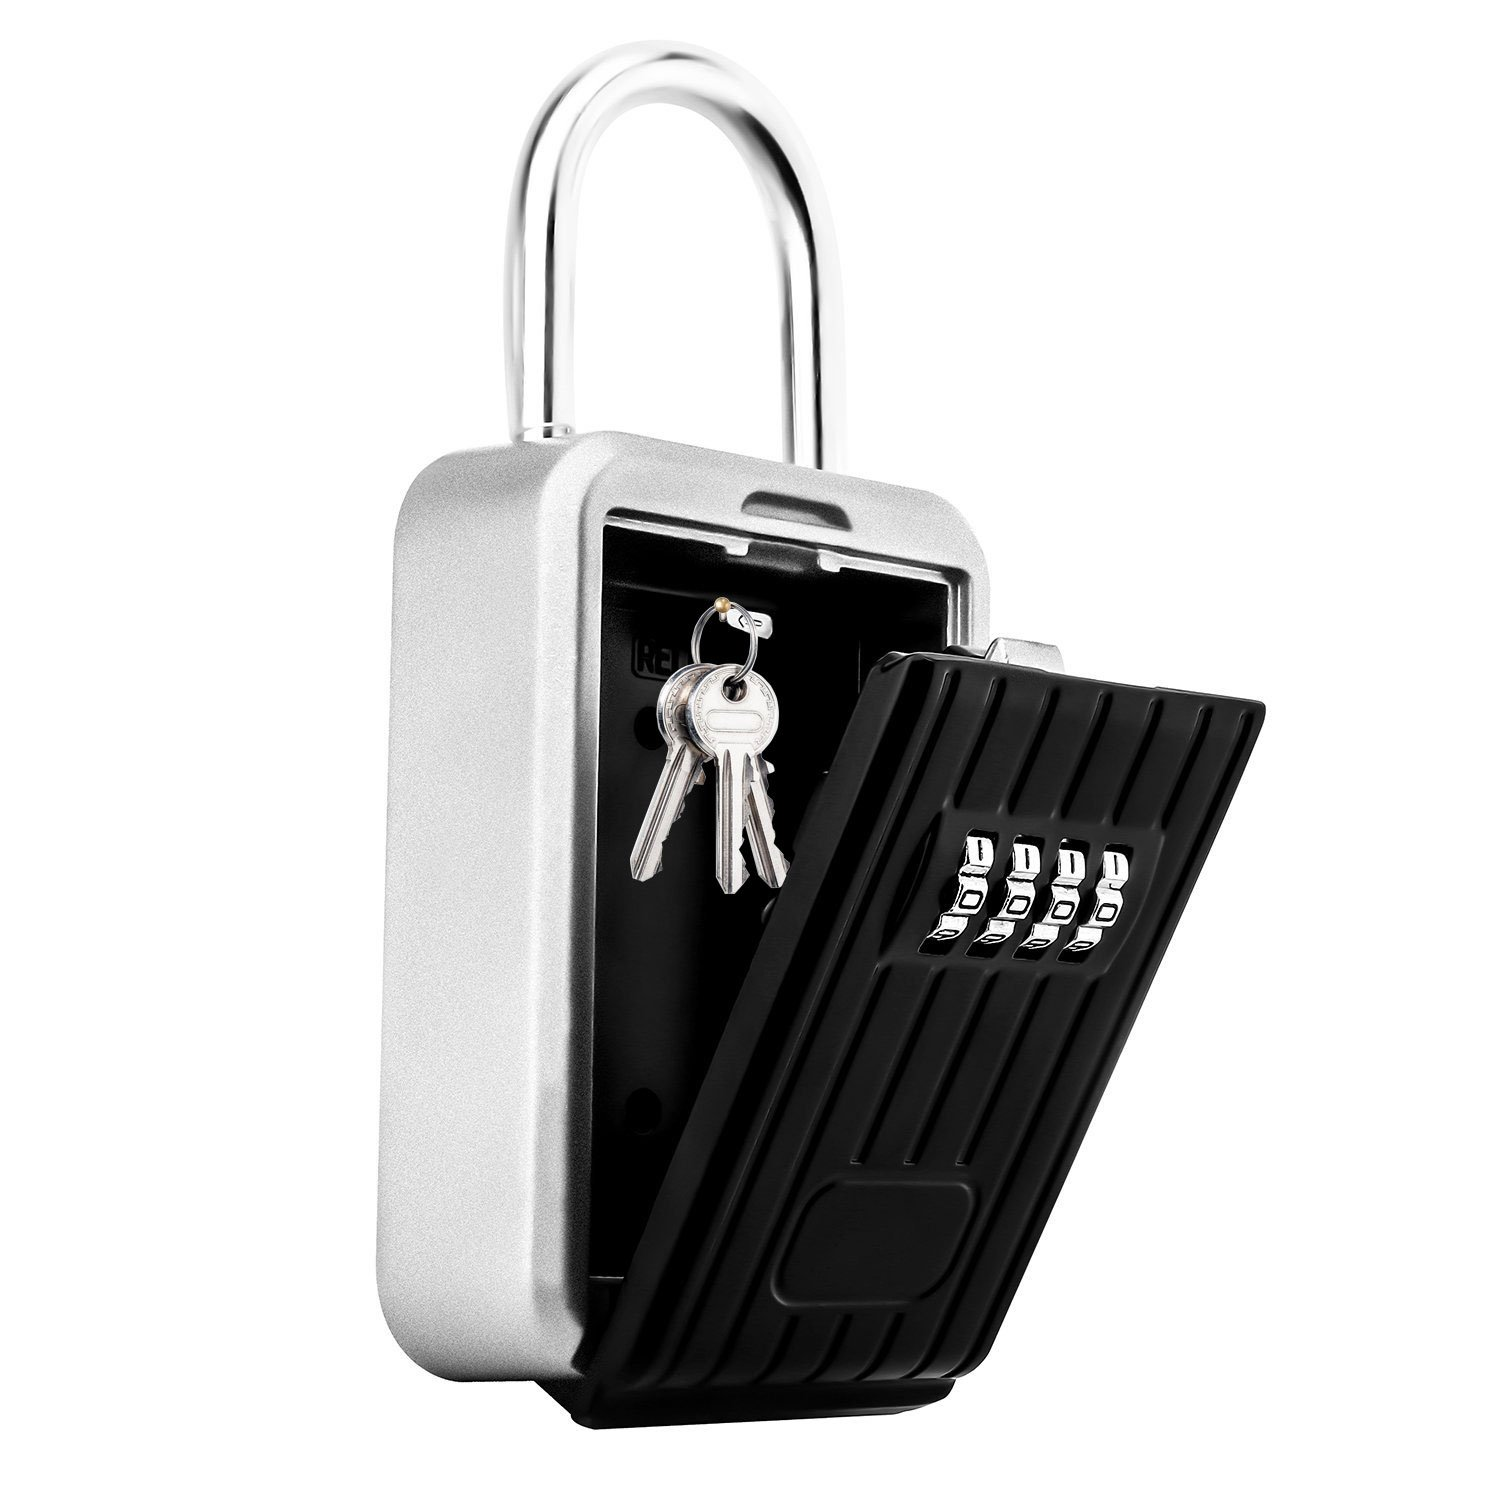 Key Lock Box,Key Storage Lock Box for House Key with 4-Digit Combination,Hanging Key Safe Box Weatherproof for Indoors and Outdoors (Hanging)